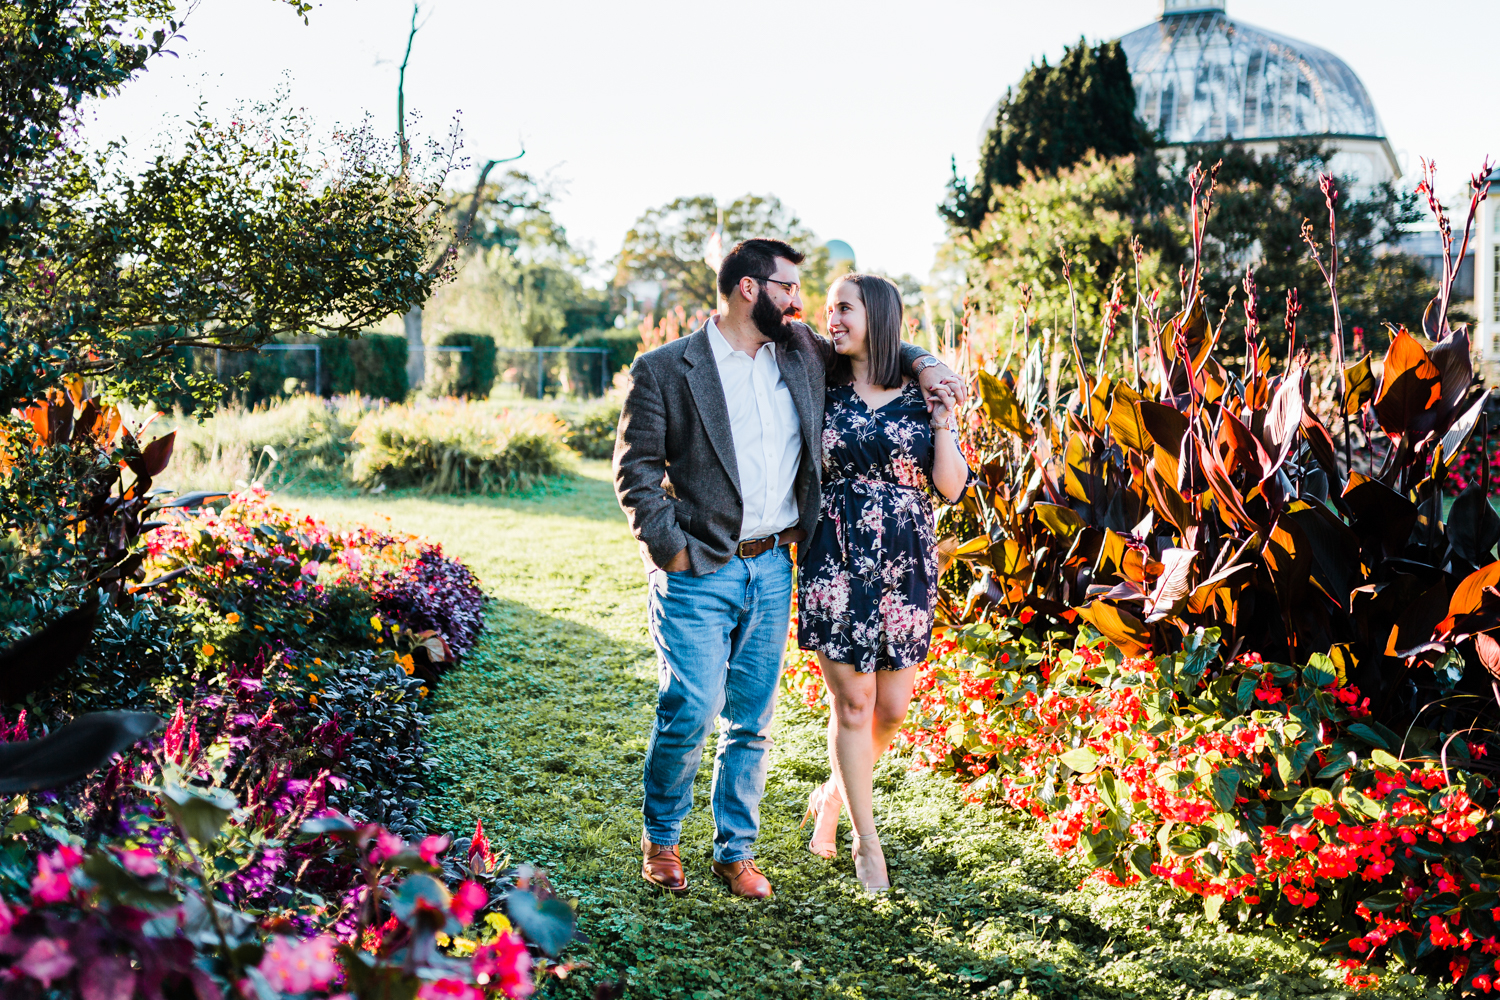 sweet couple walking through garden - top rated engagement photographer in Maryland